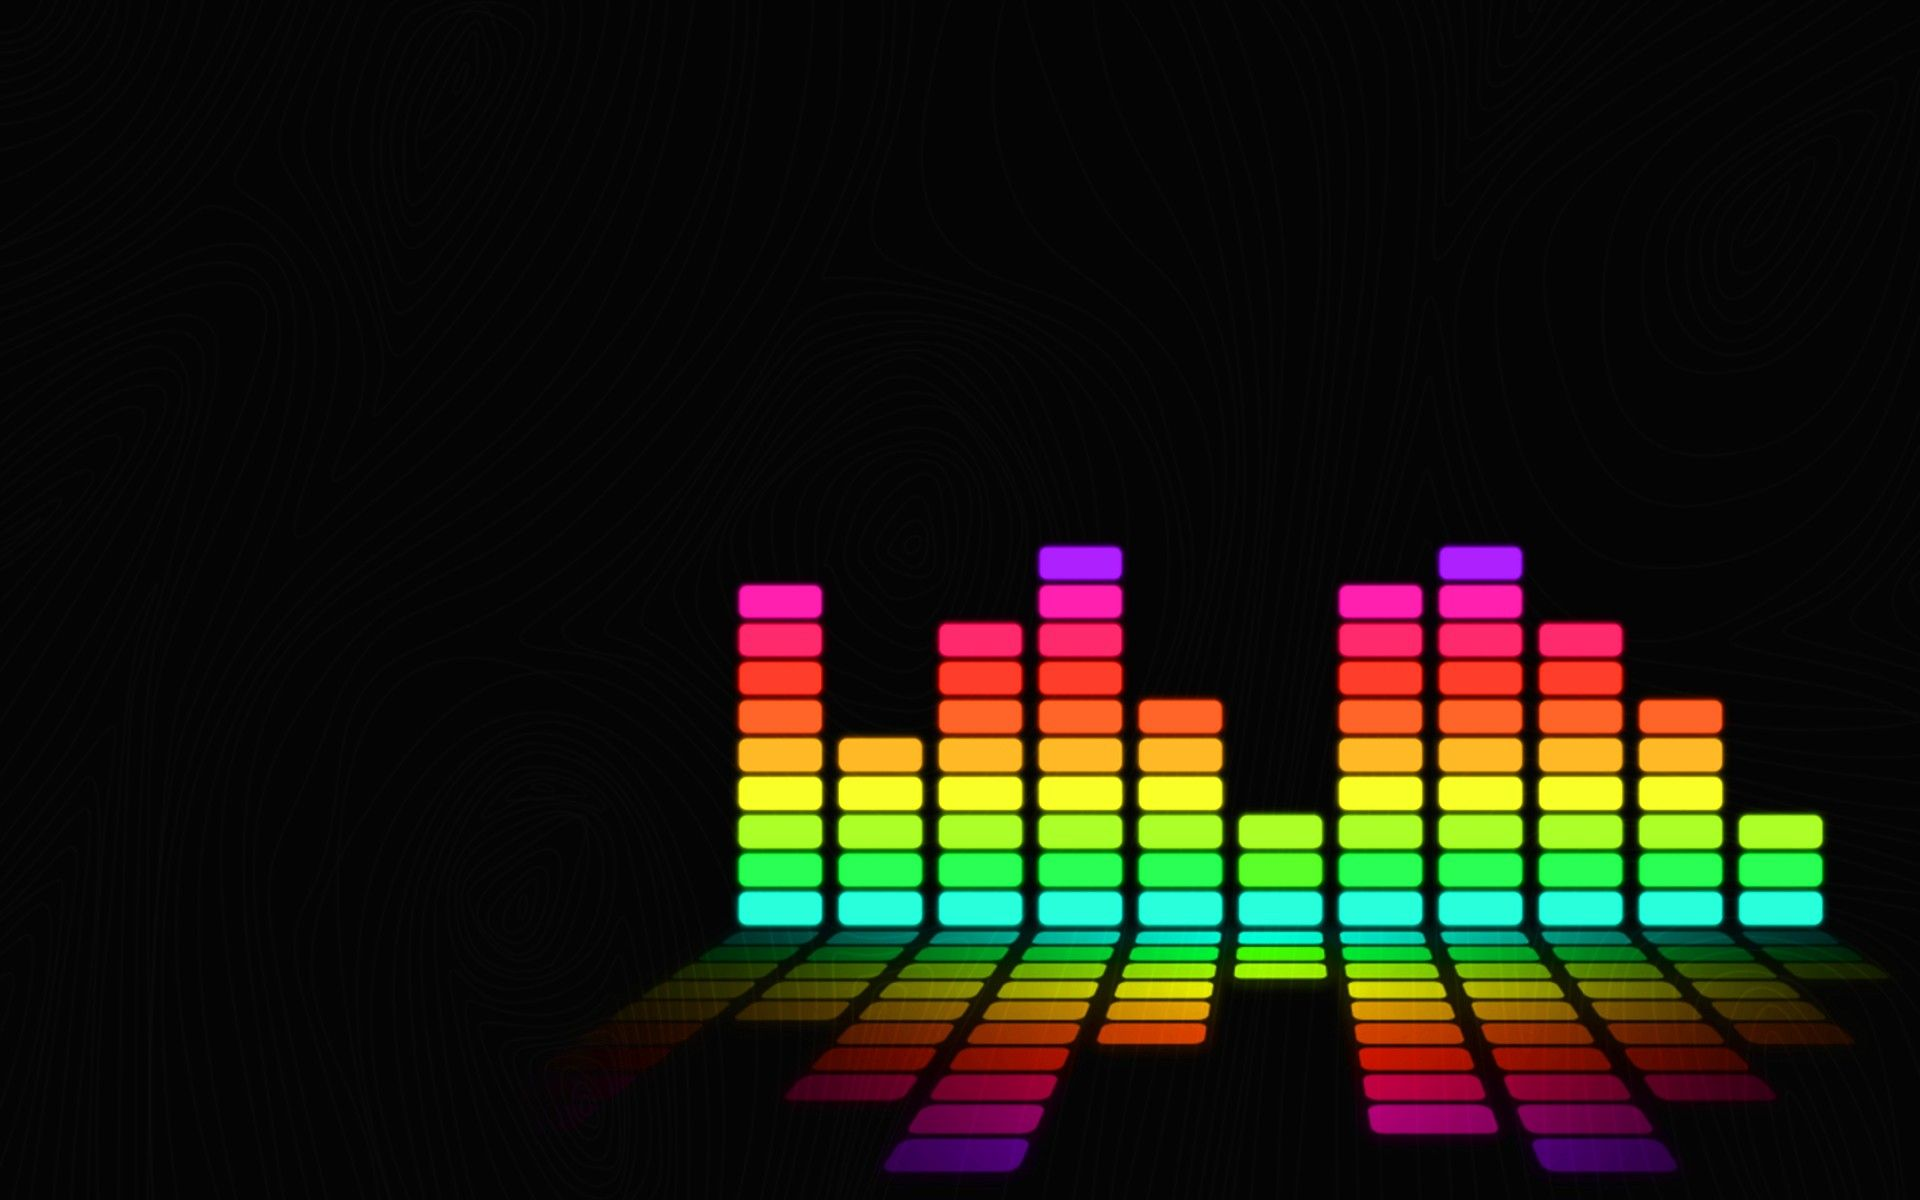 Colorful Abstract DJ Audio Spectrum Music Wallpaper